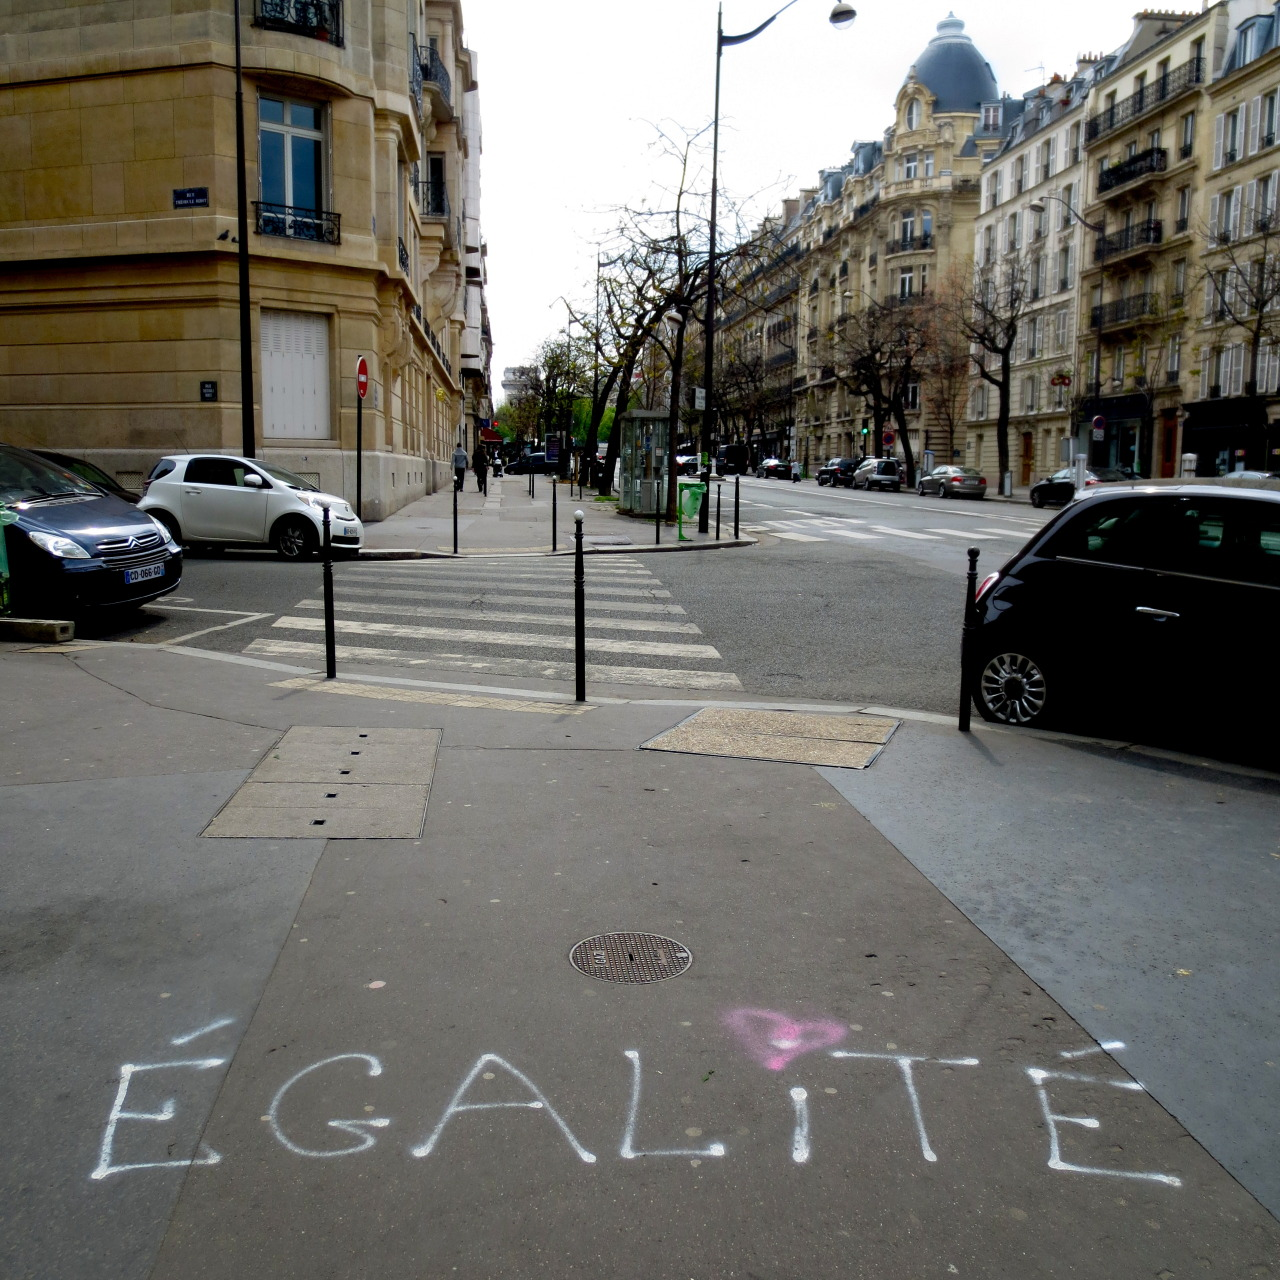 newsweek-paris-france:  27 April 2013 - Aftermath of the gay marriage demonstrations in Paris, France. The gays won.